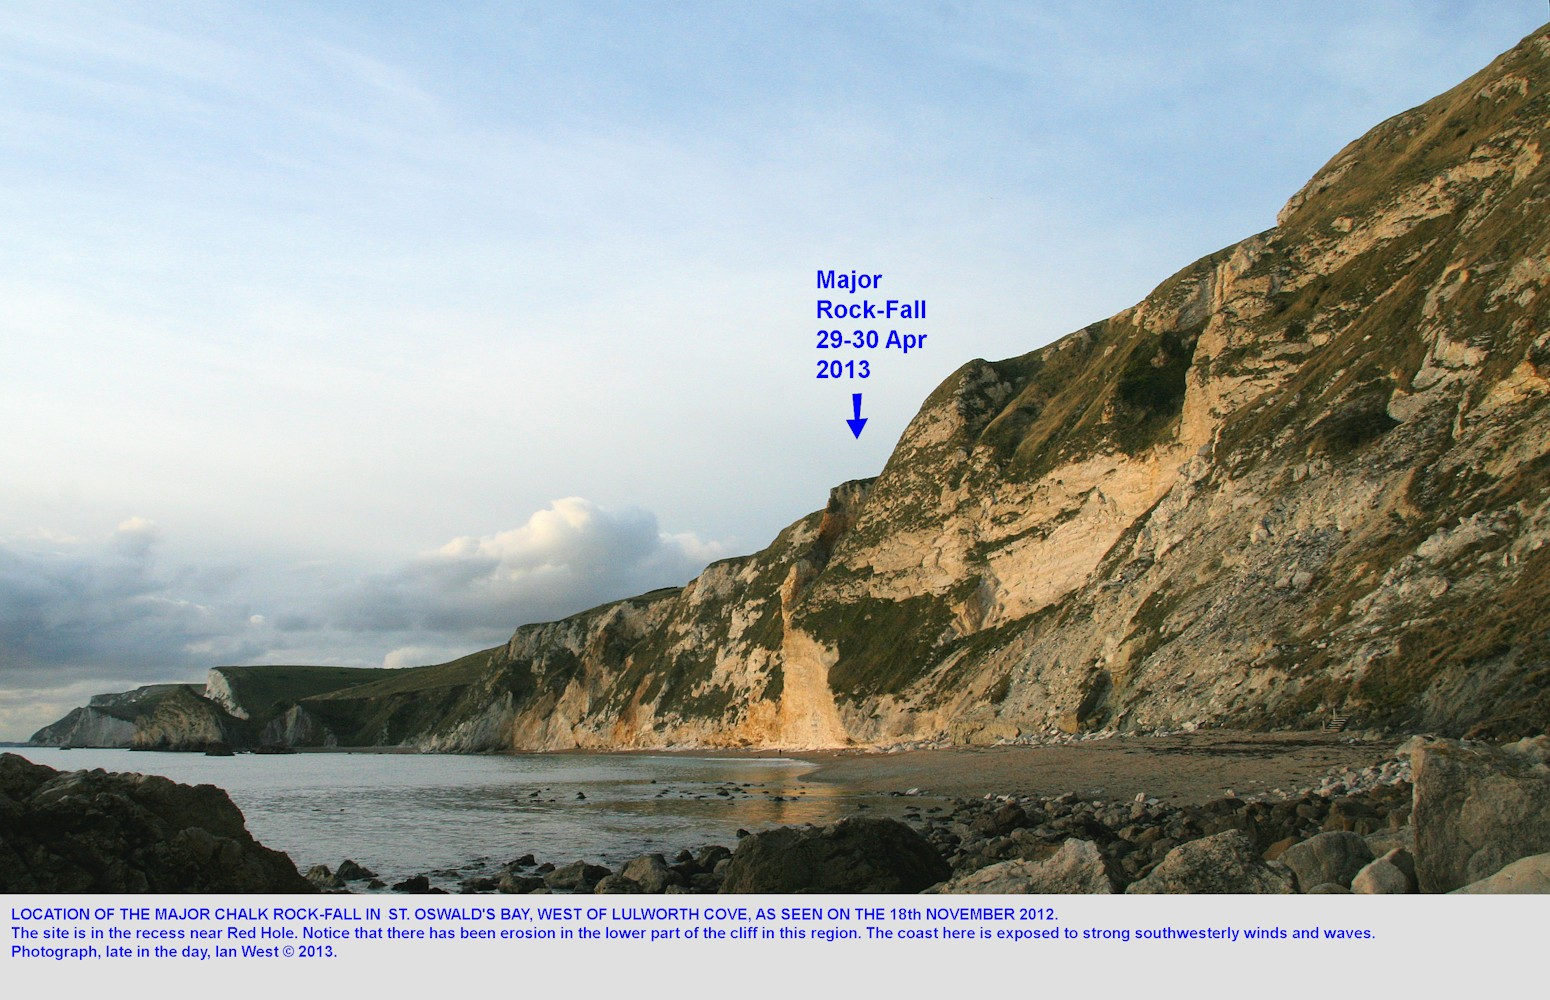 The Chalk cliffs of St. Ostwald's Bay in November 2012, before the 2013 major rockfall, near Lulworth Cove, Dorset